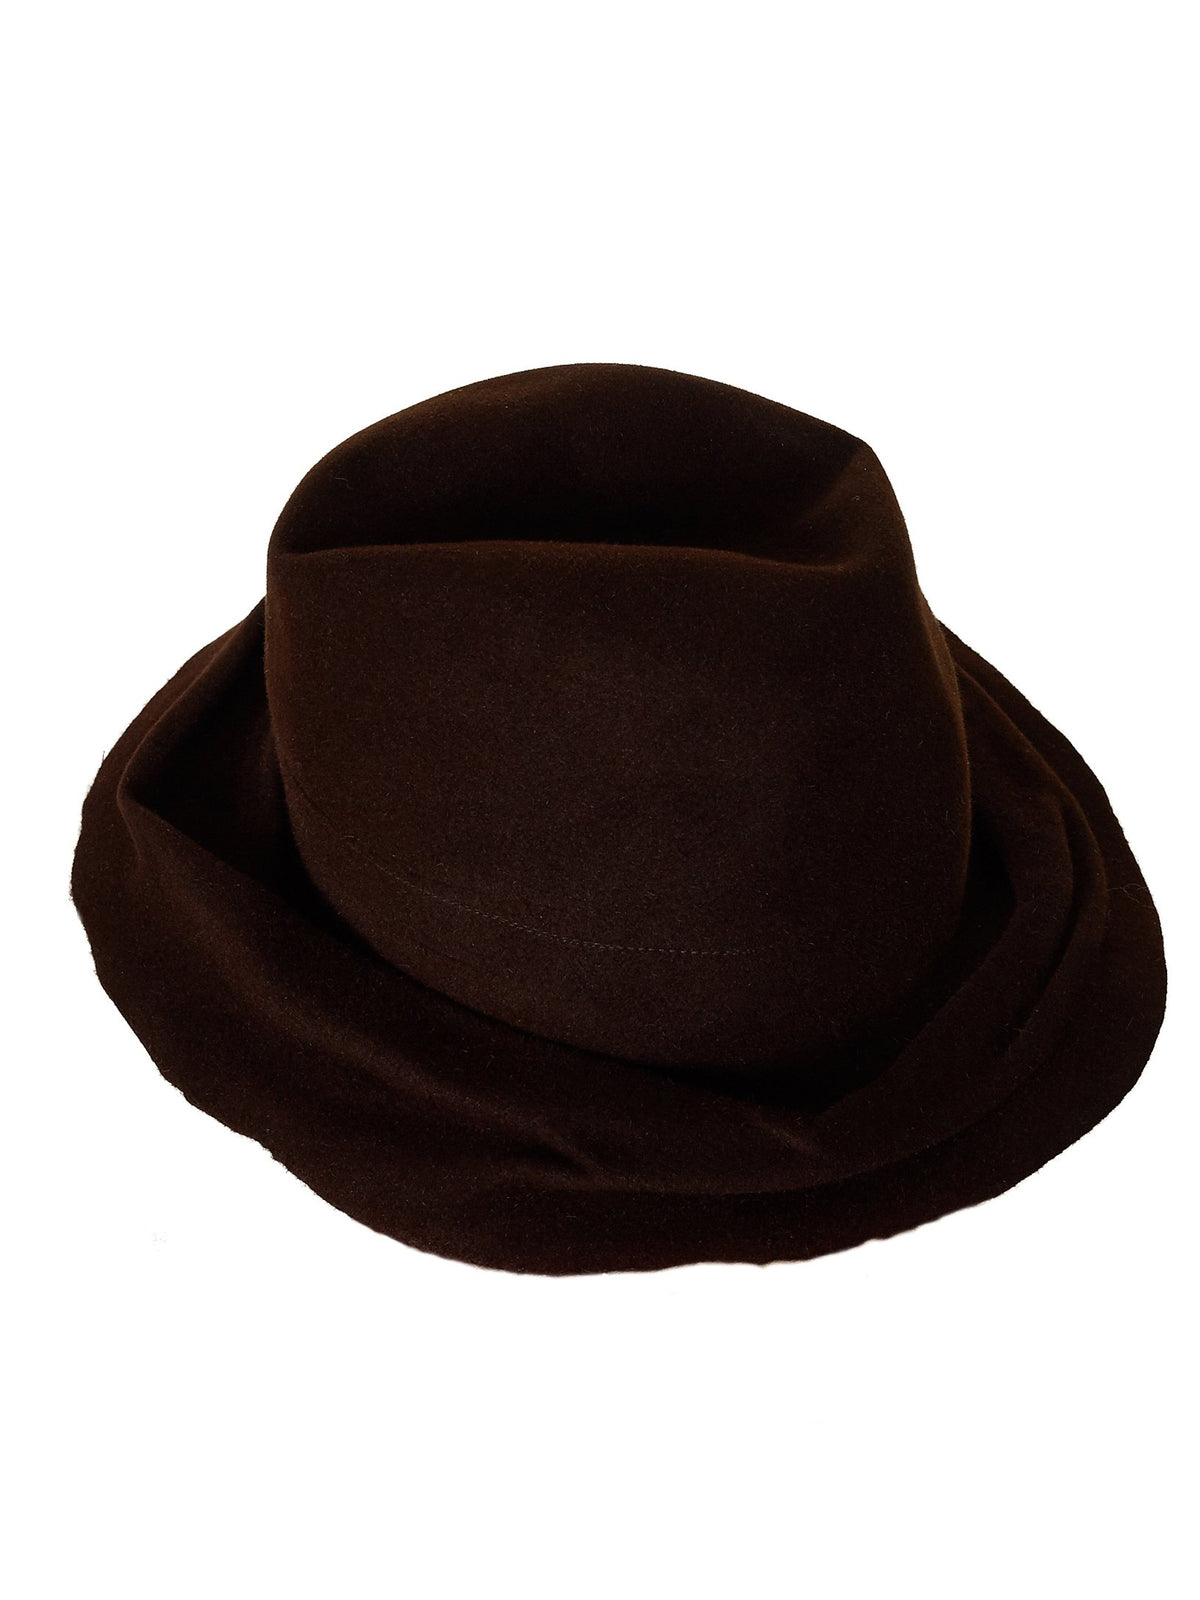 'Traveller' Vintage Fur Hat (TRAVELLER-SM-UNIQ-B#3-BROWN)